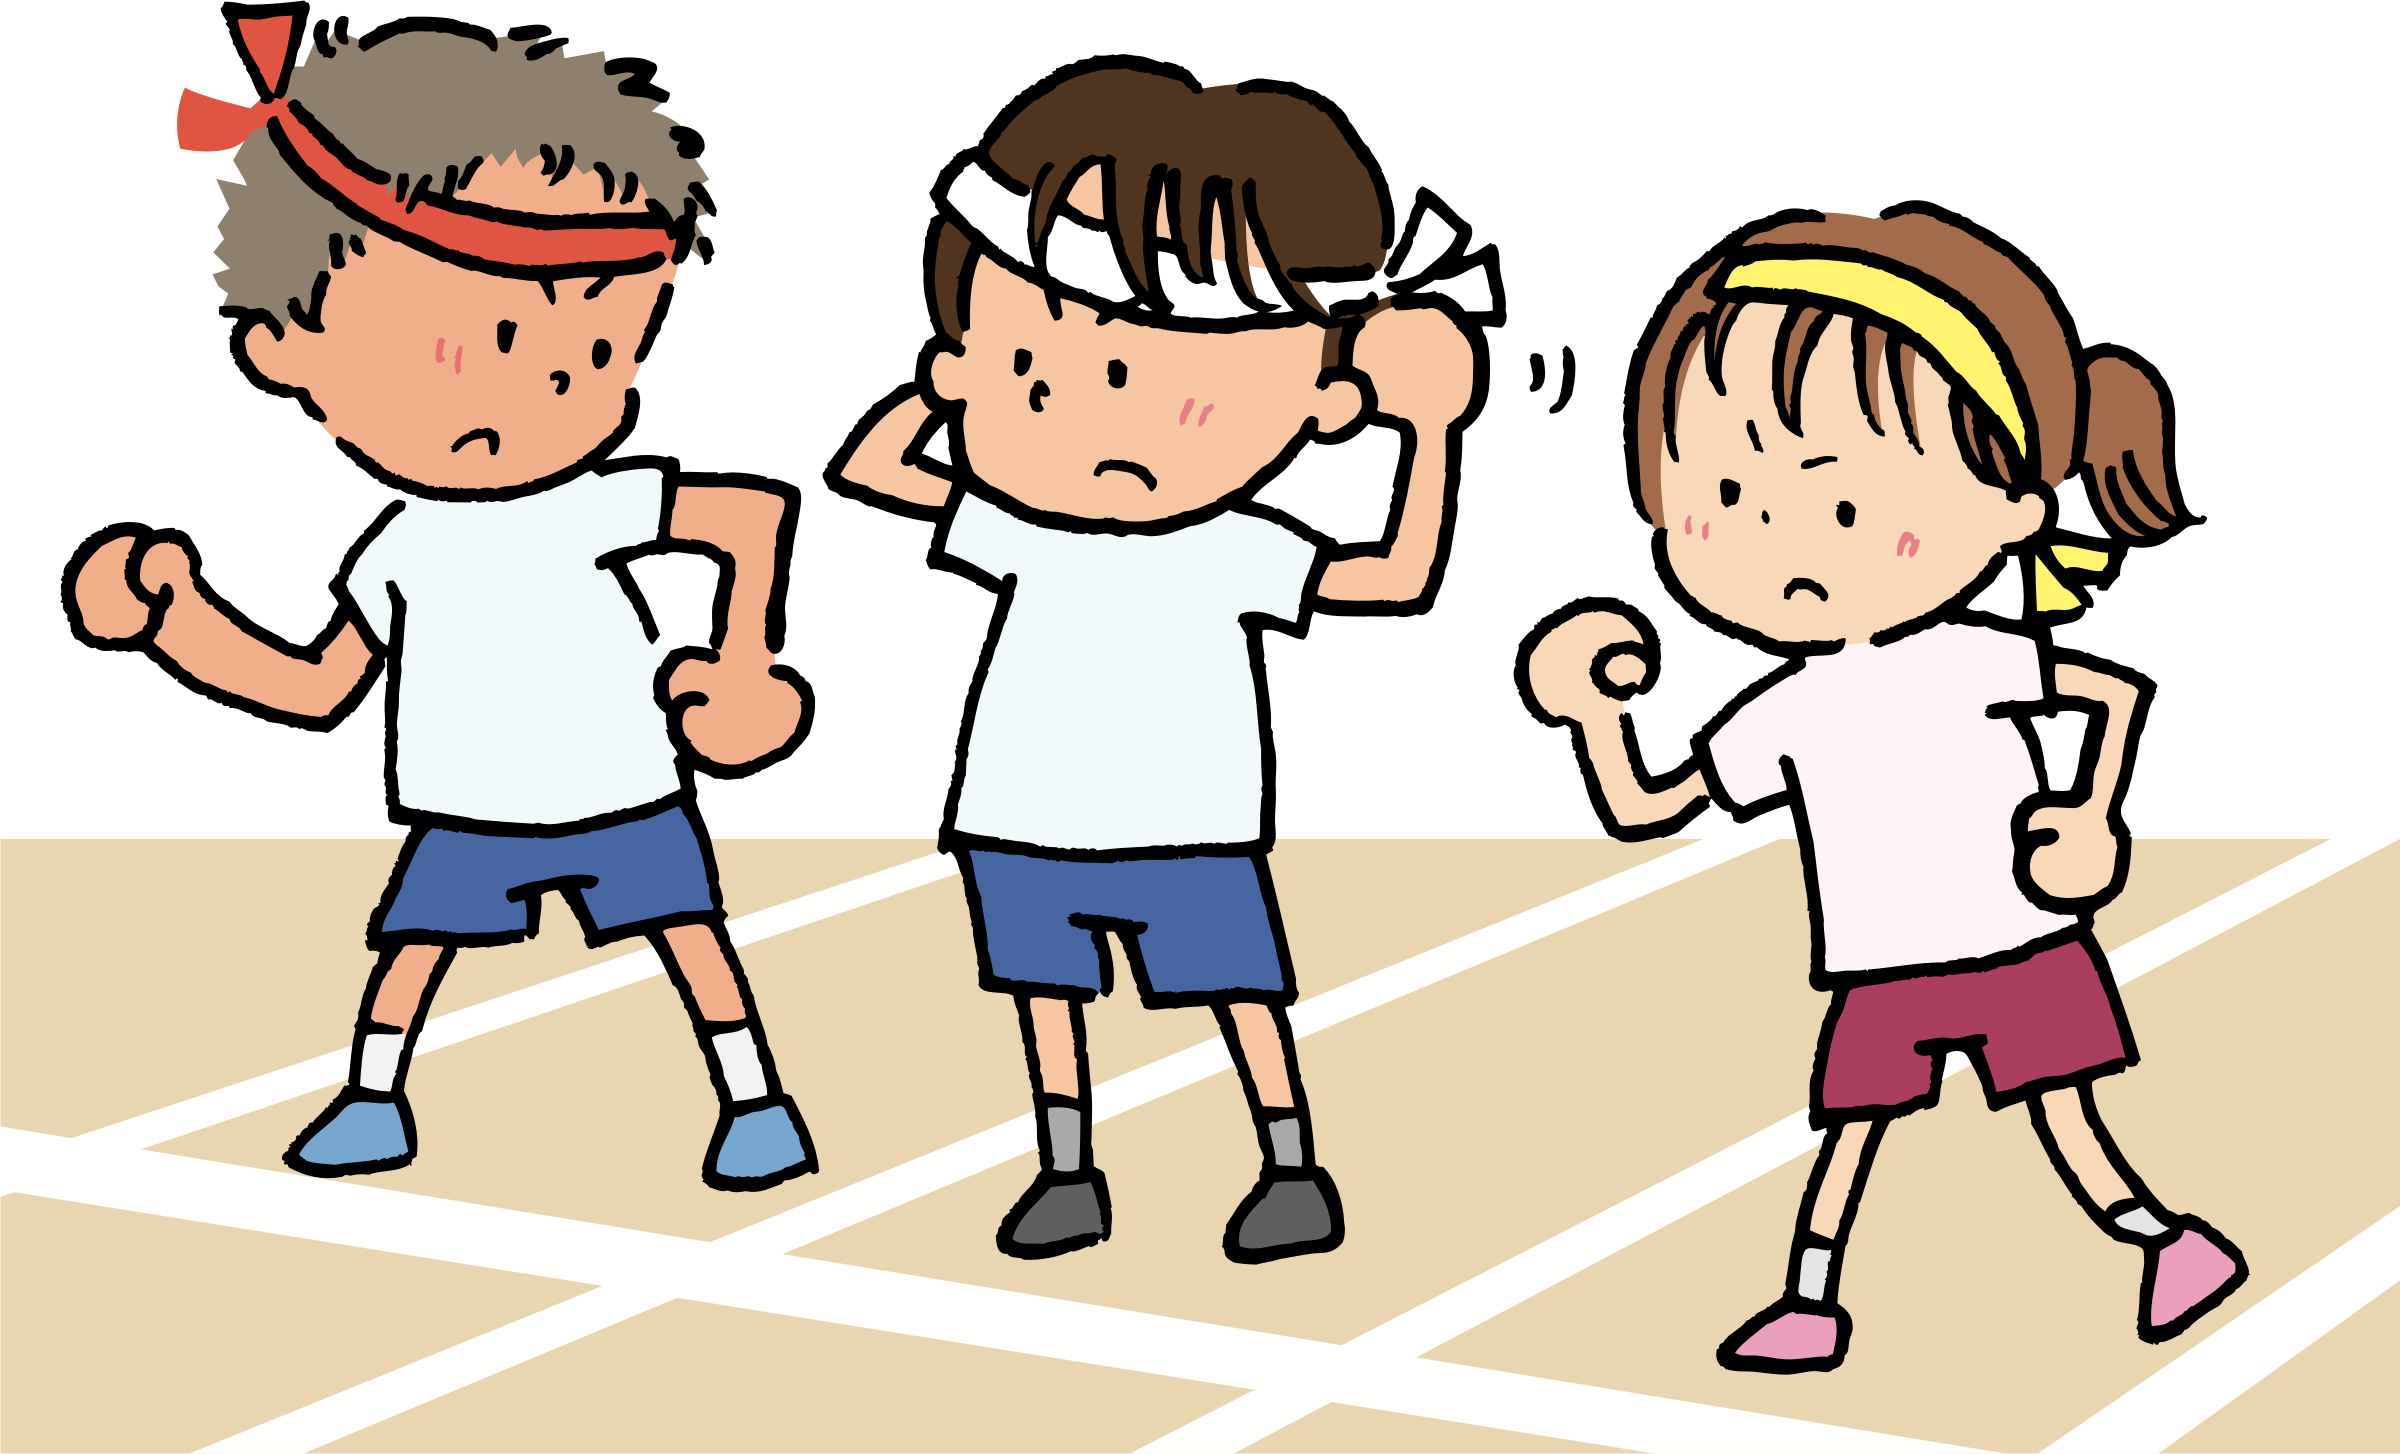 Race clipart kid race.  collection of starting